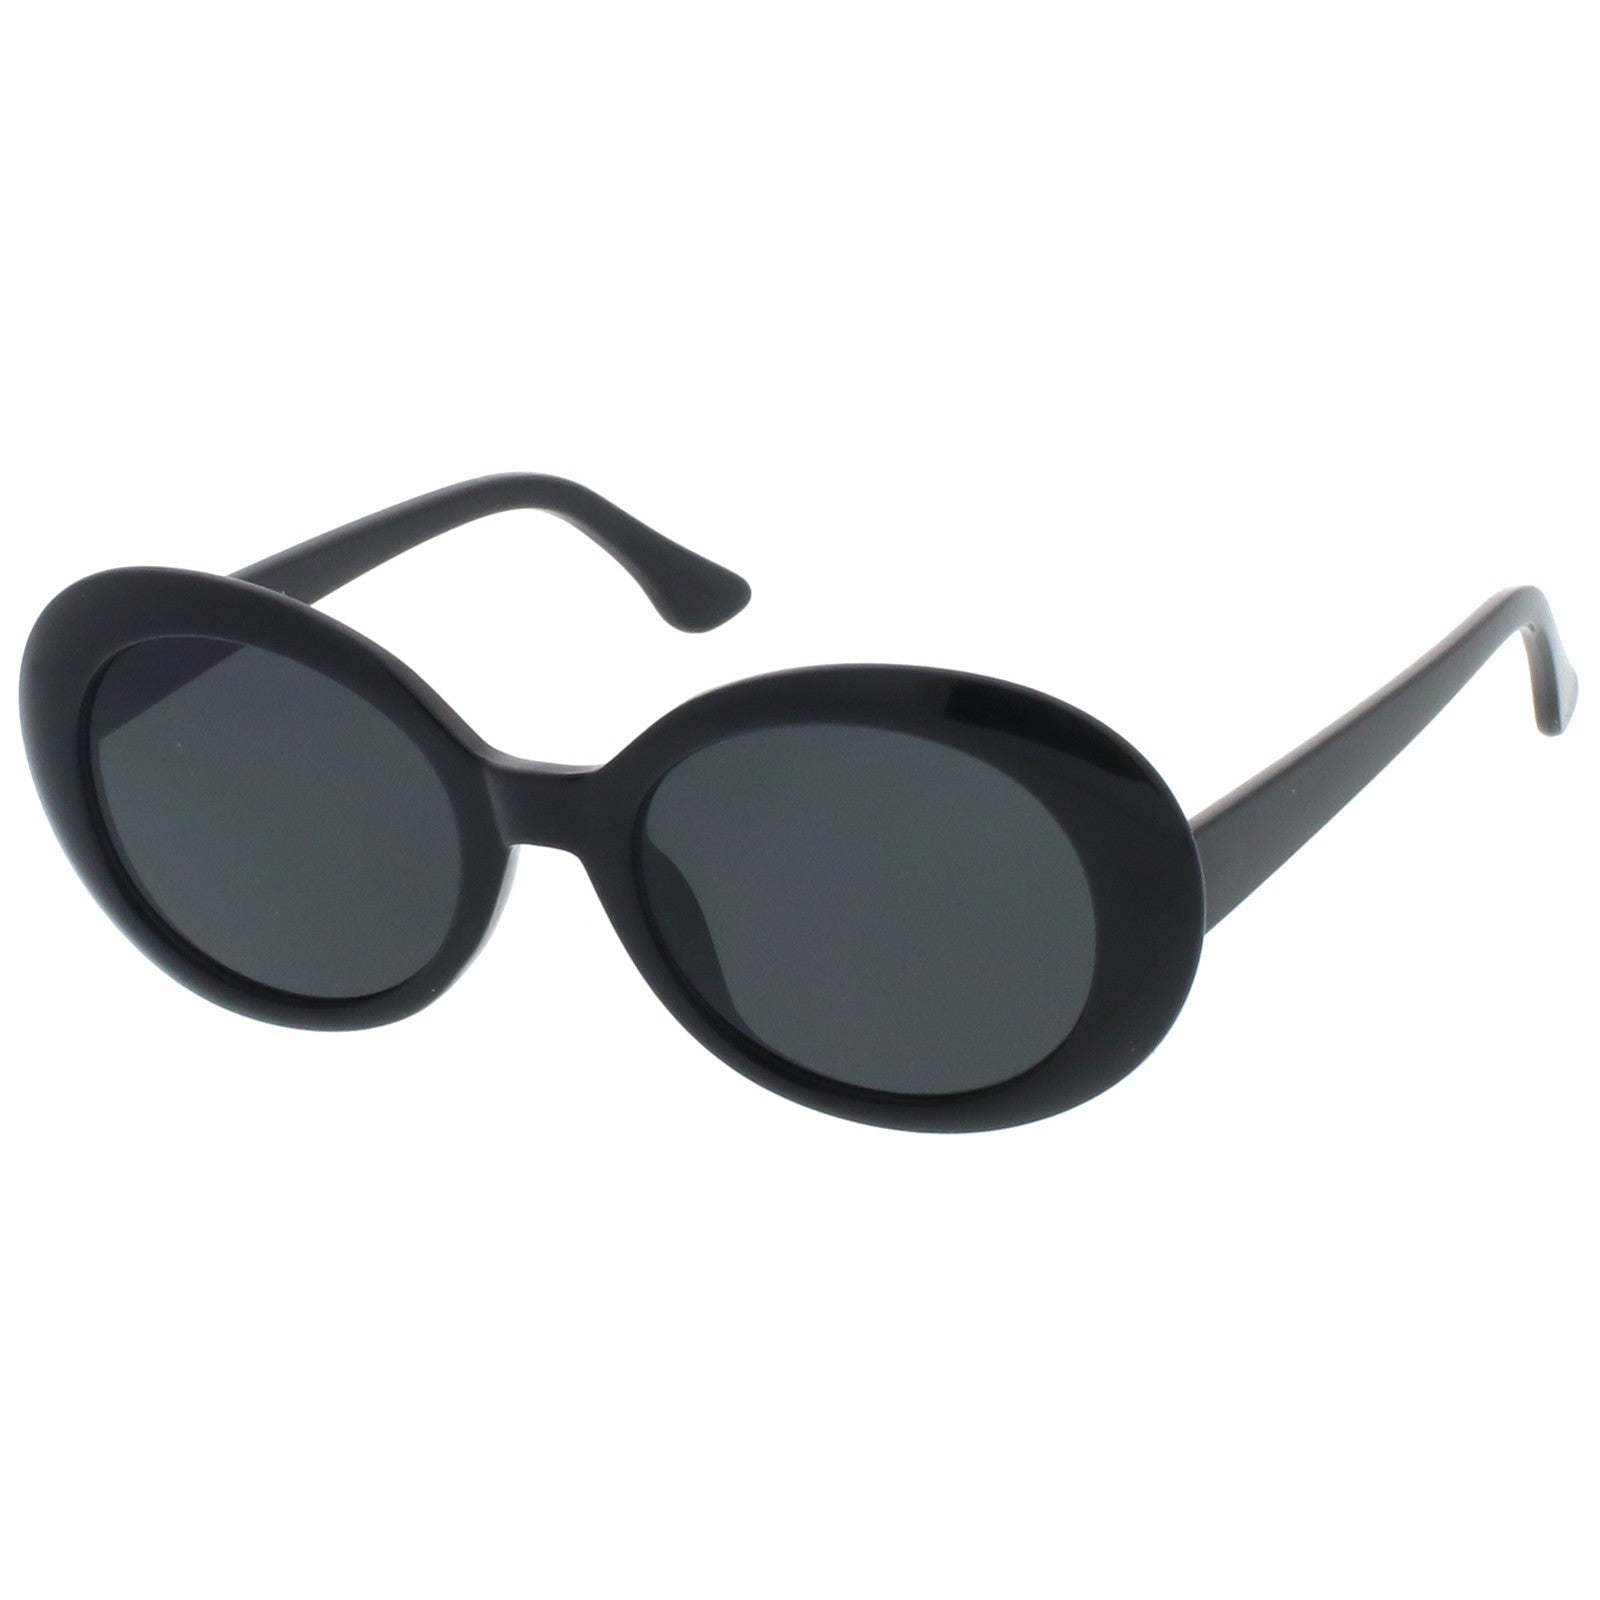 Retro Oval Sunglasses Tapered Arms Neutral Colored Round Lens 53mm (White / Smoke)